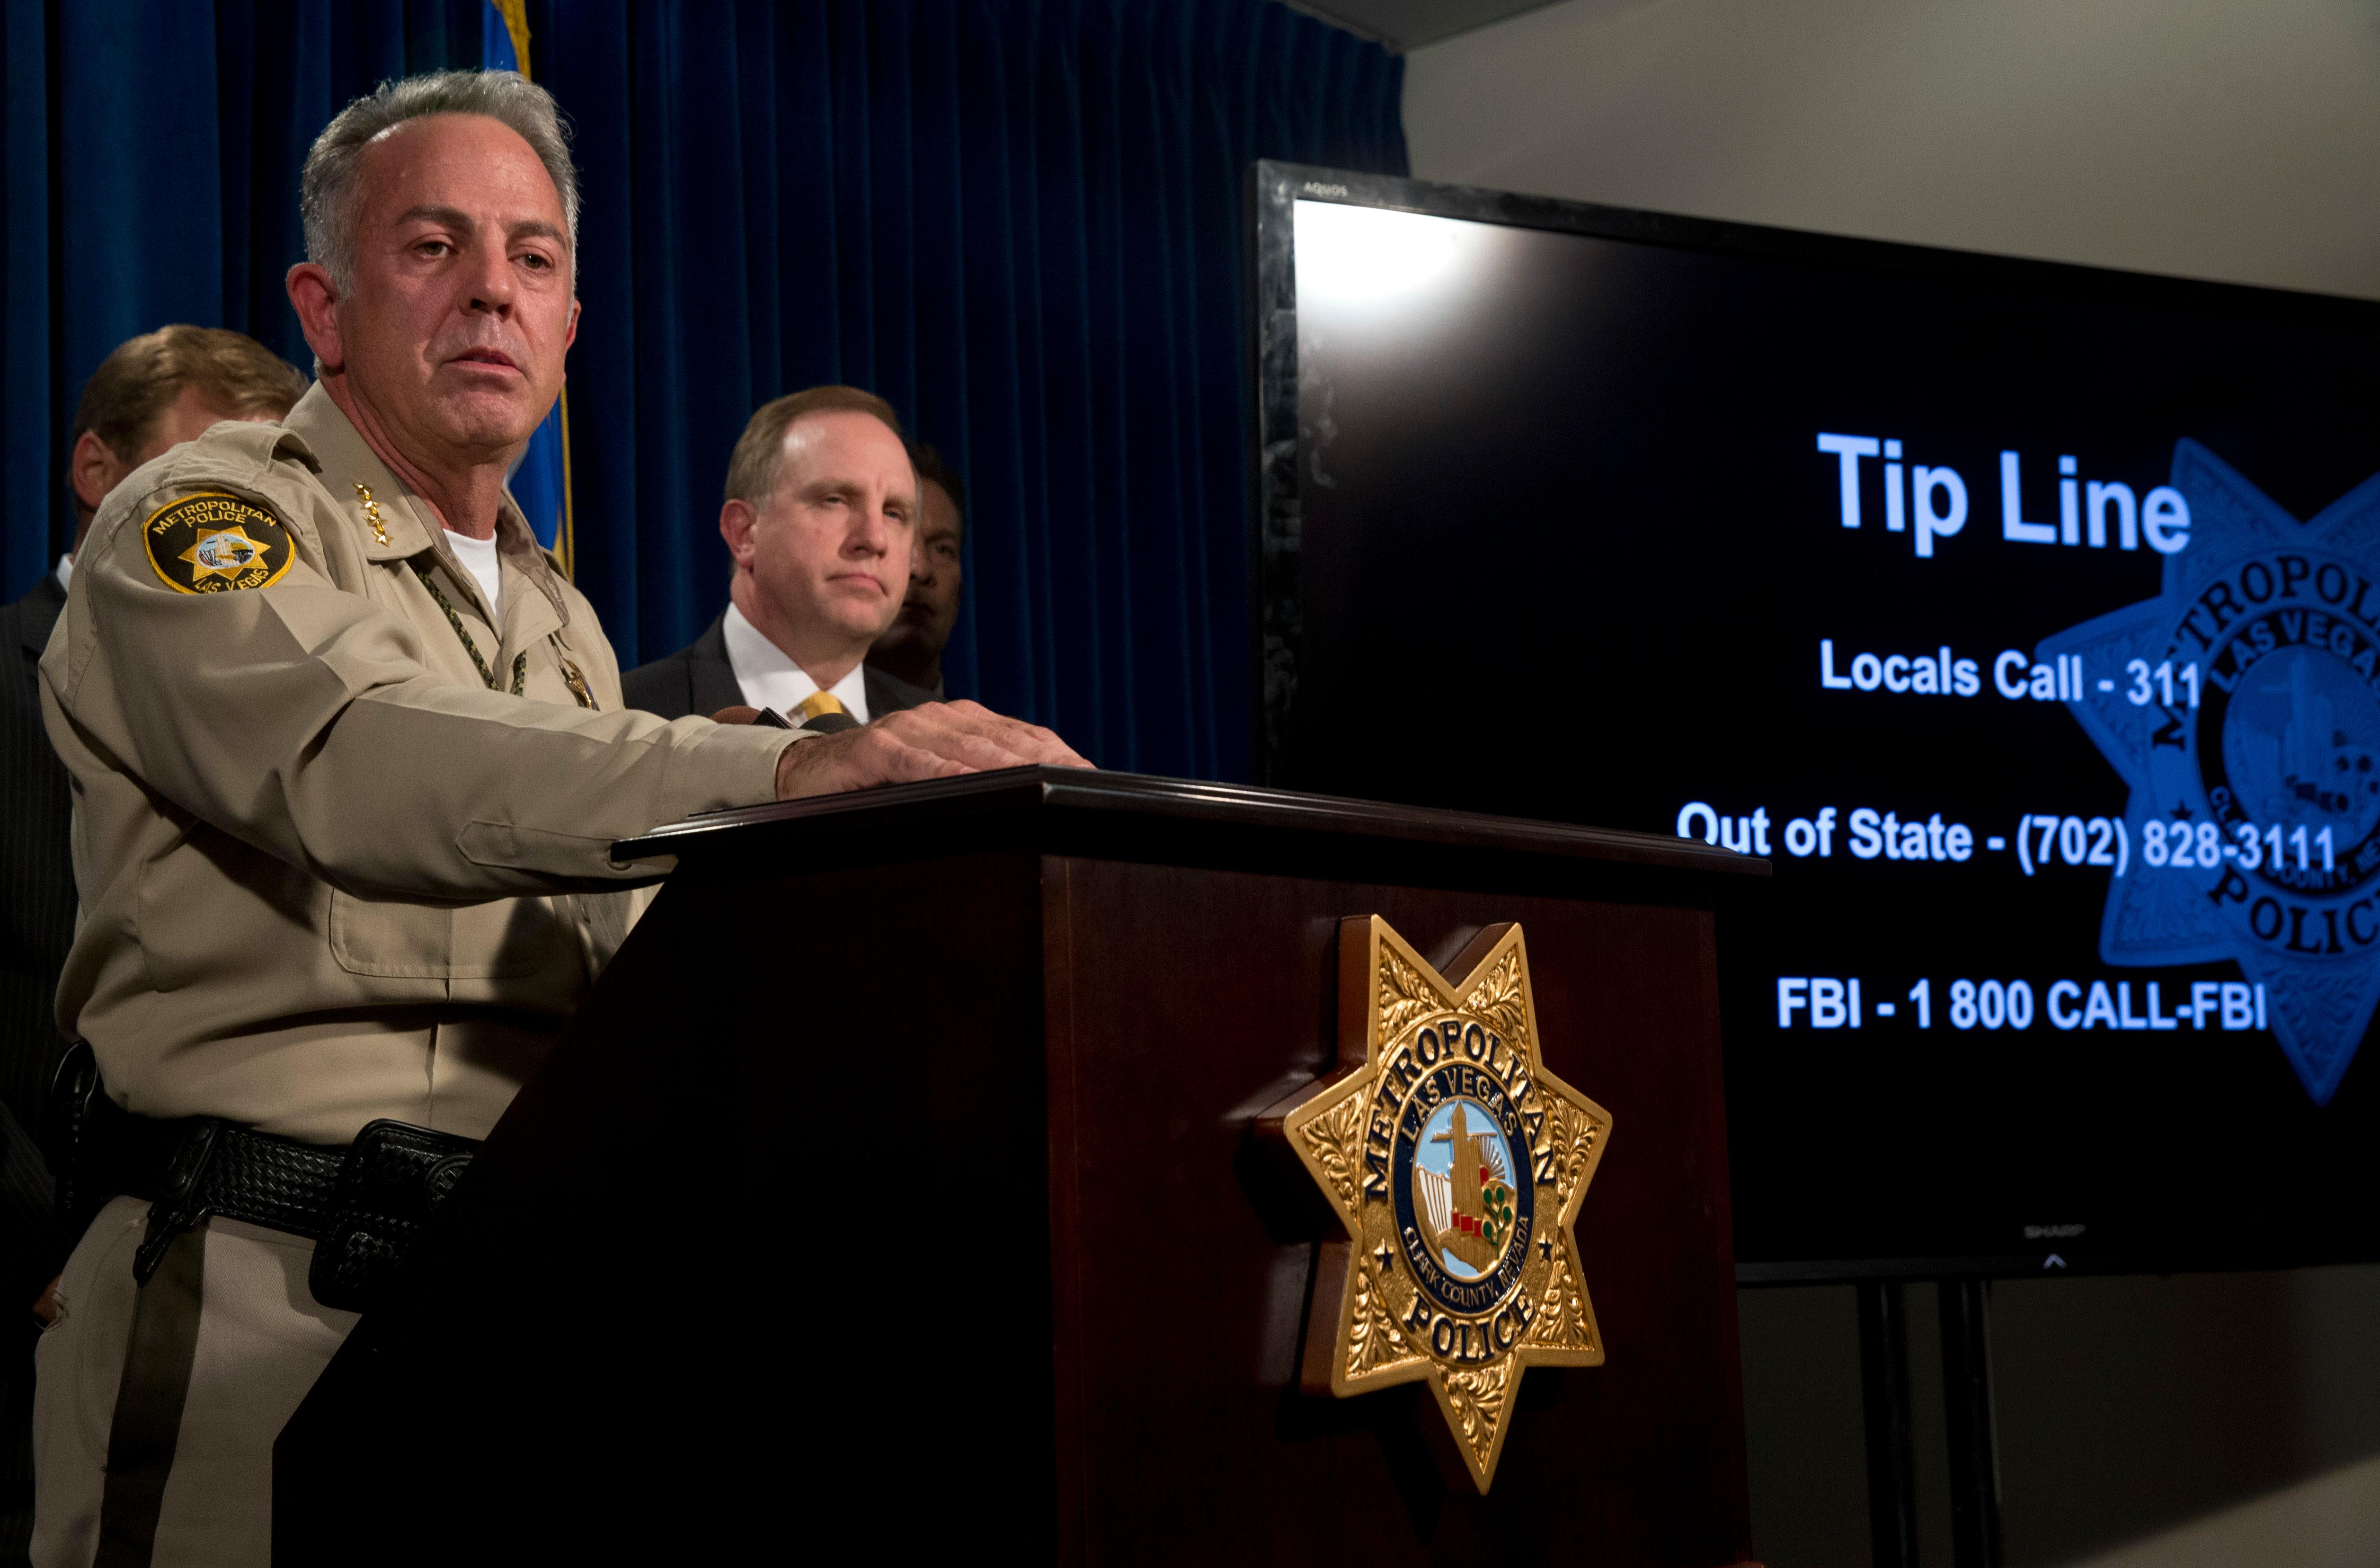 Clark County Sheriff Joe Lombardo holds a media briefing at Metro Police headquarters in Las Vegas Wednesday, Oct. 4, 2017. Investigators trying to figure out the Las Vegas gunman, Stephen Paddock's state of mind have so far been stymied by the secret life he appeared to lead before the attack on a country music concert on the Las Vegas Strip Sunday. (Steve Marcus/Las Vegas Sun via AP)